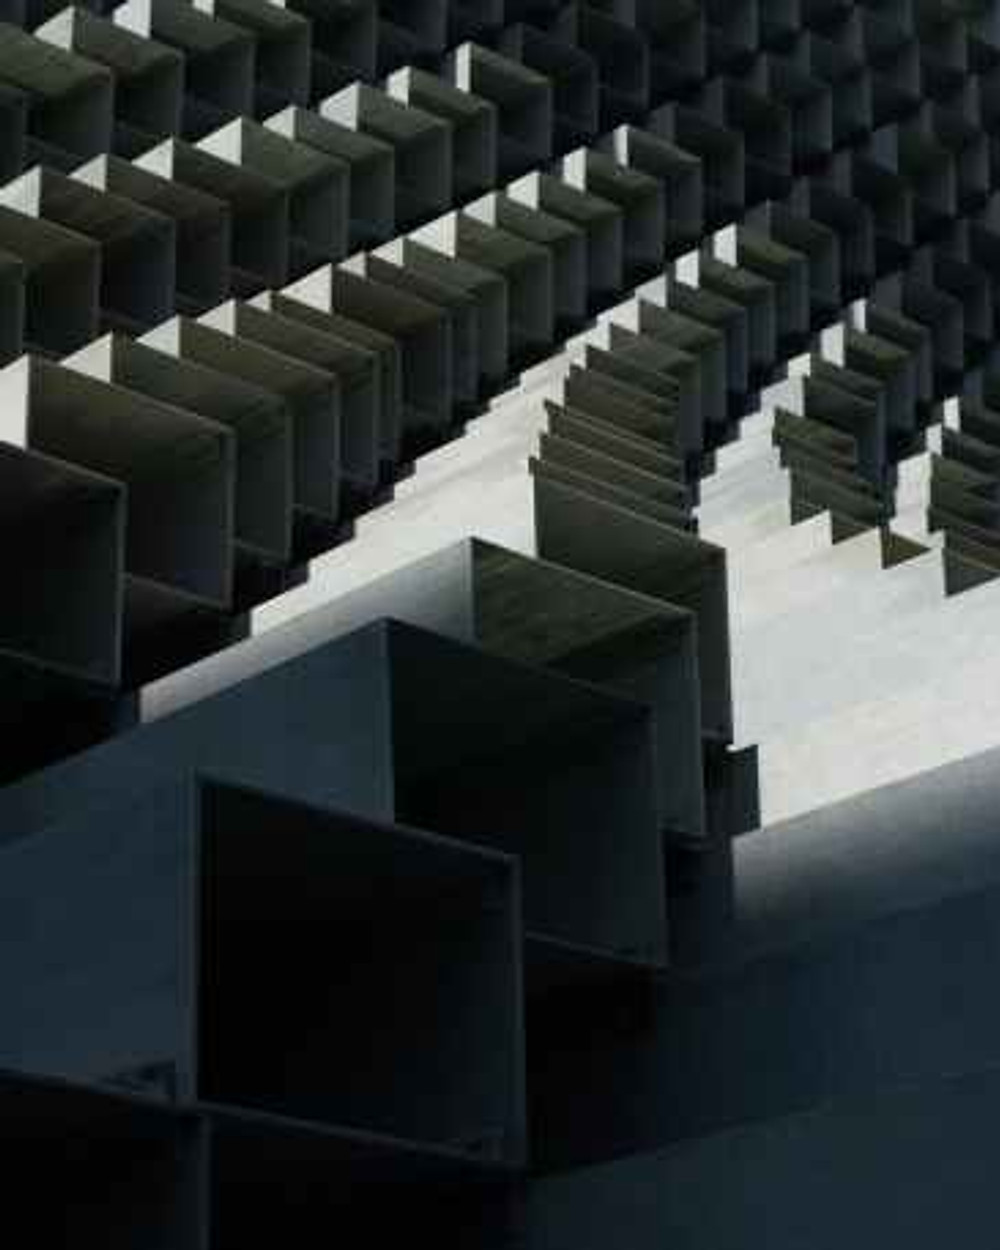 abstract architecture auditorium boxes